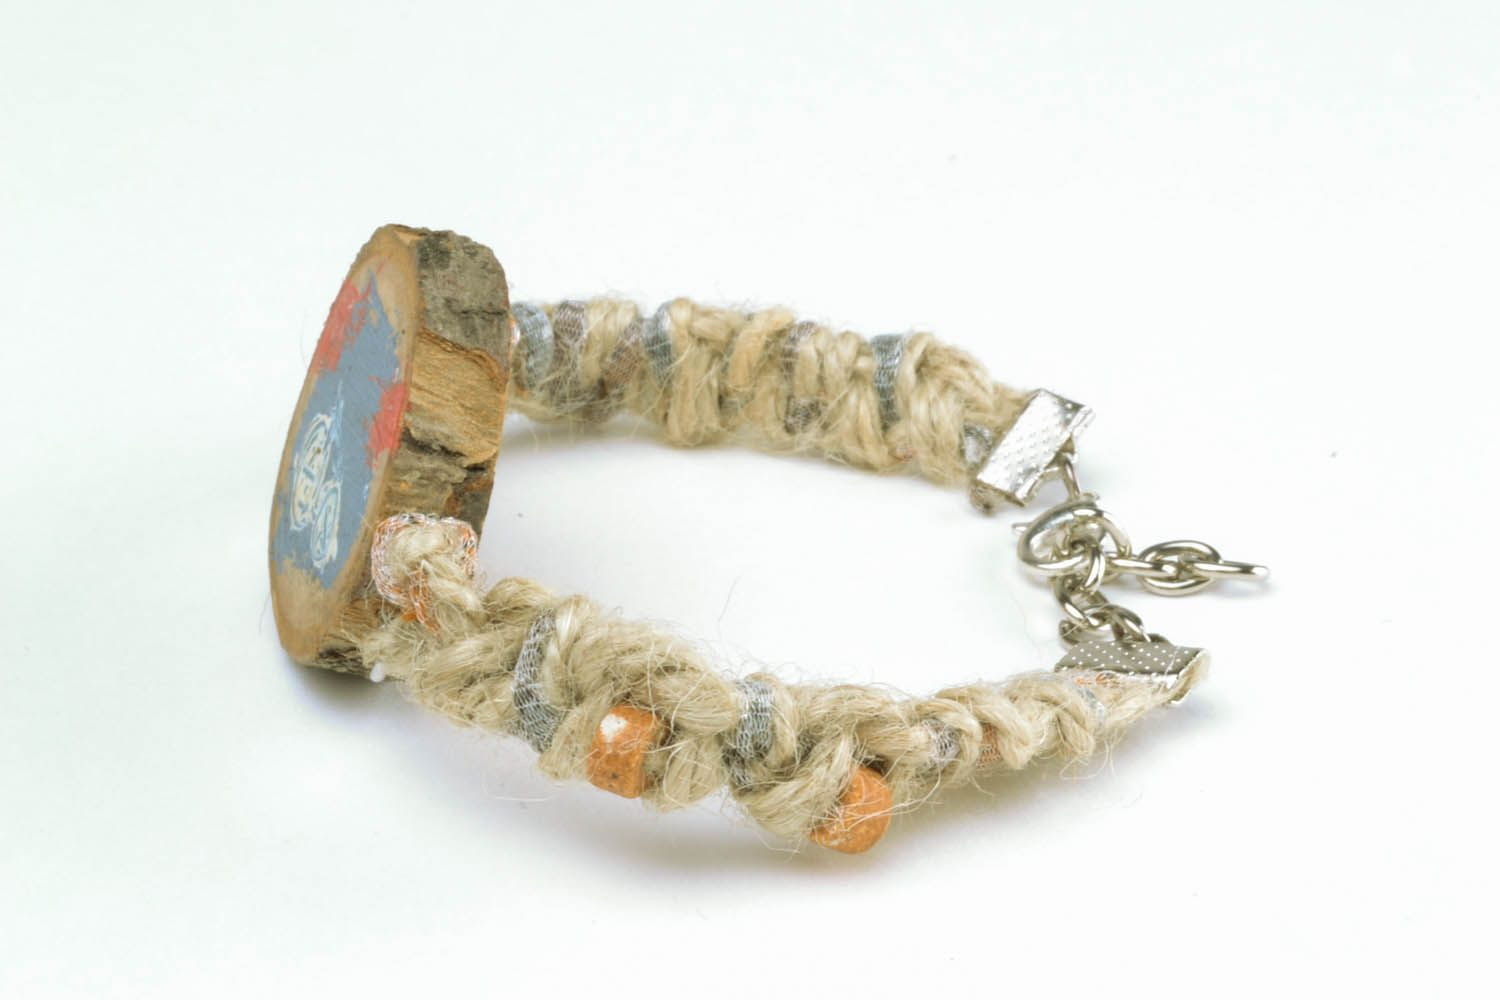 Bracelet made of threads photo 6